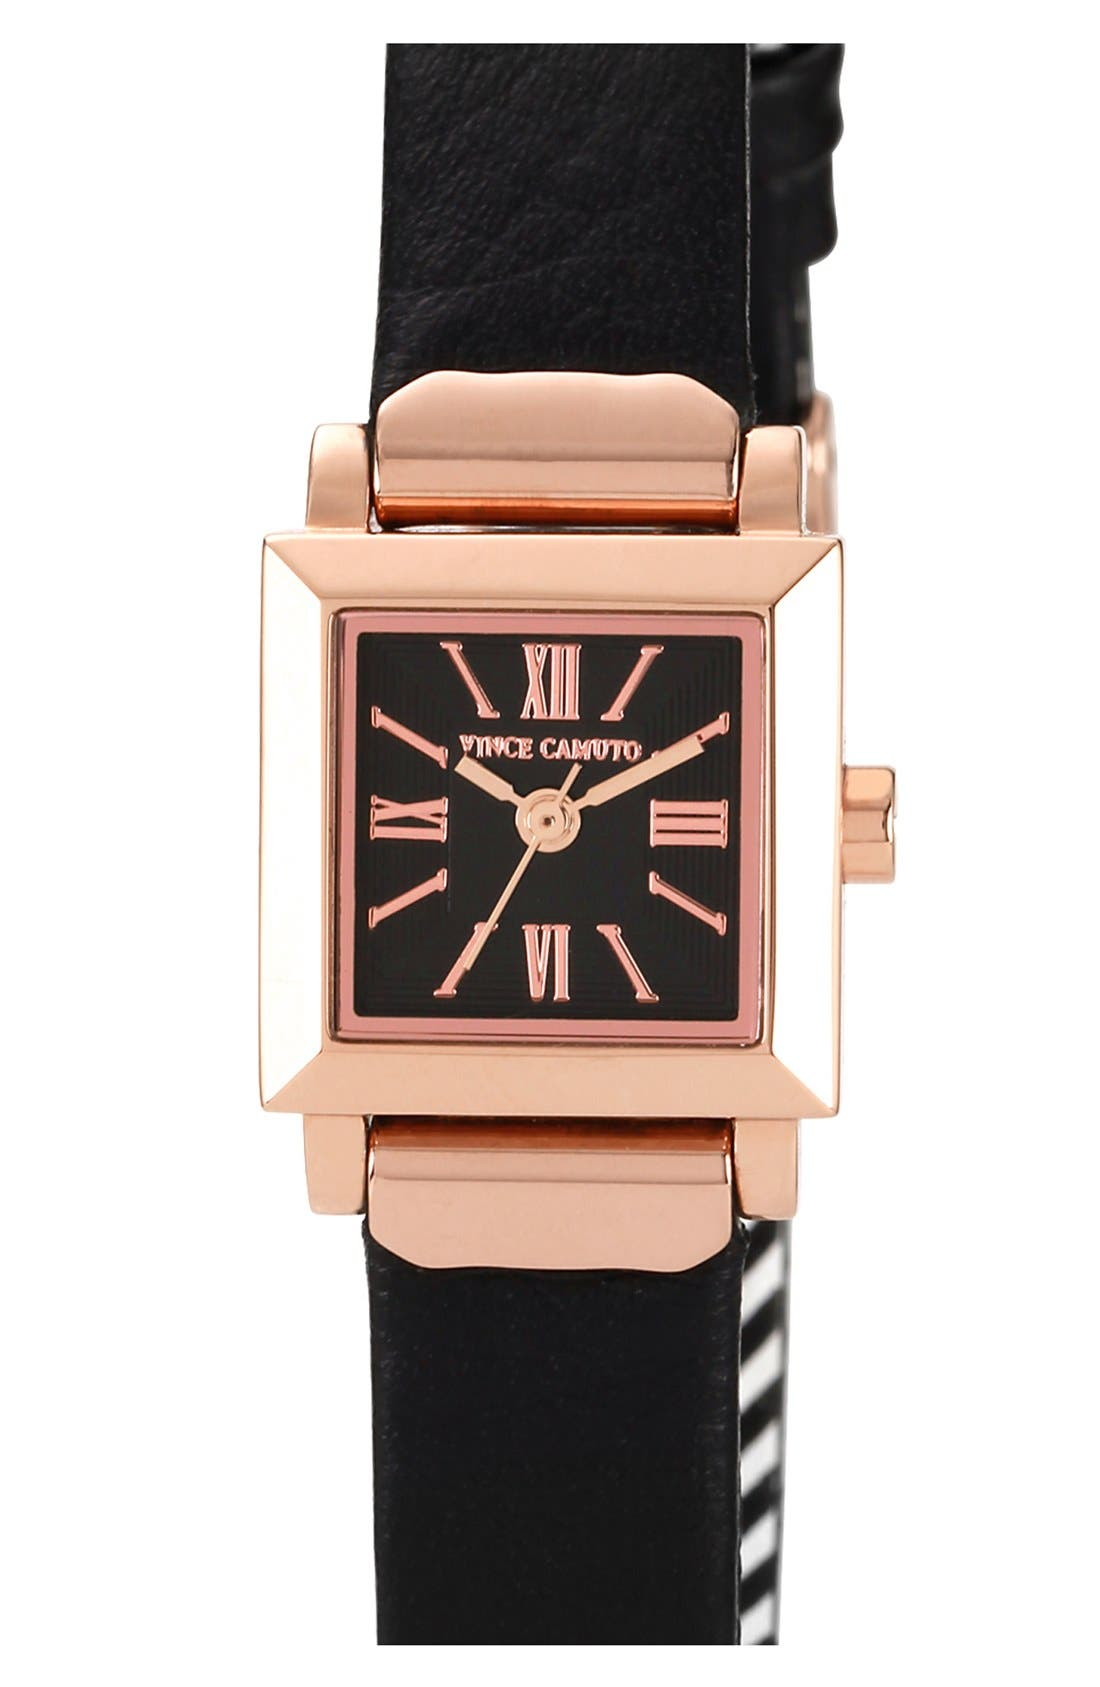 Main Image - Vince Camuto Mini Square Case Watch, 19mm